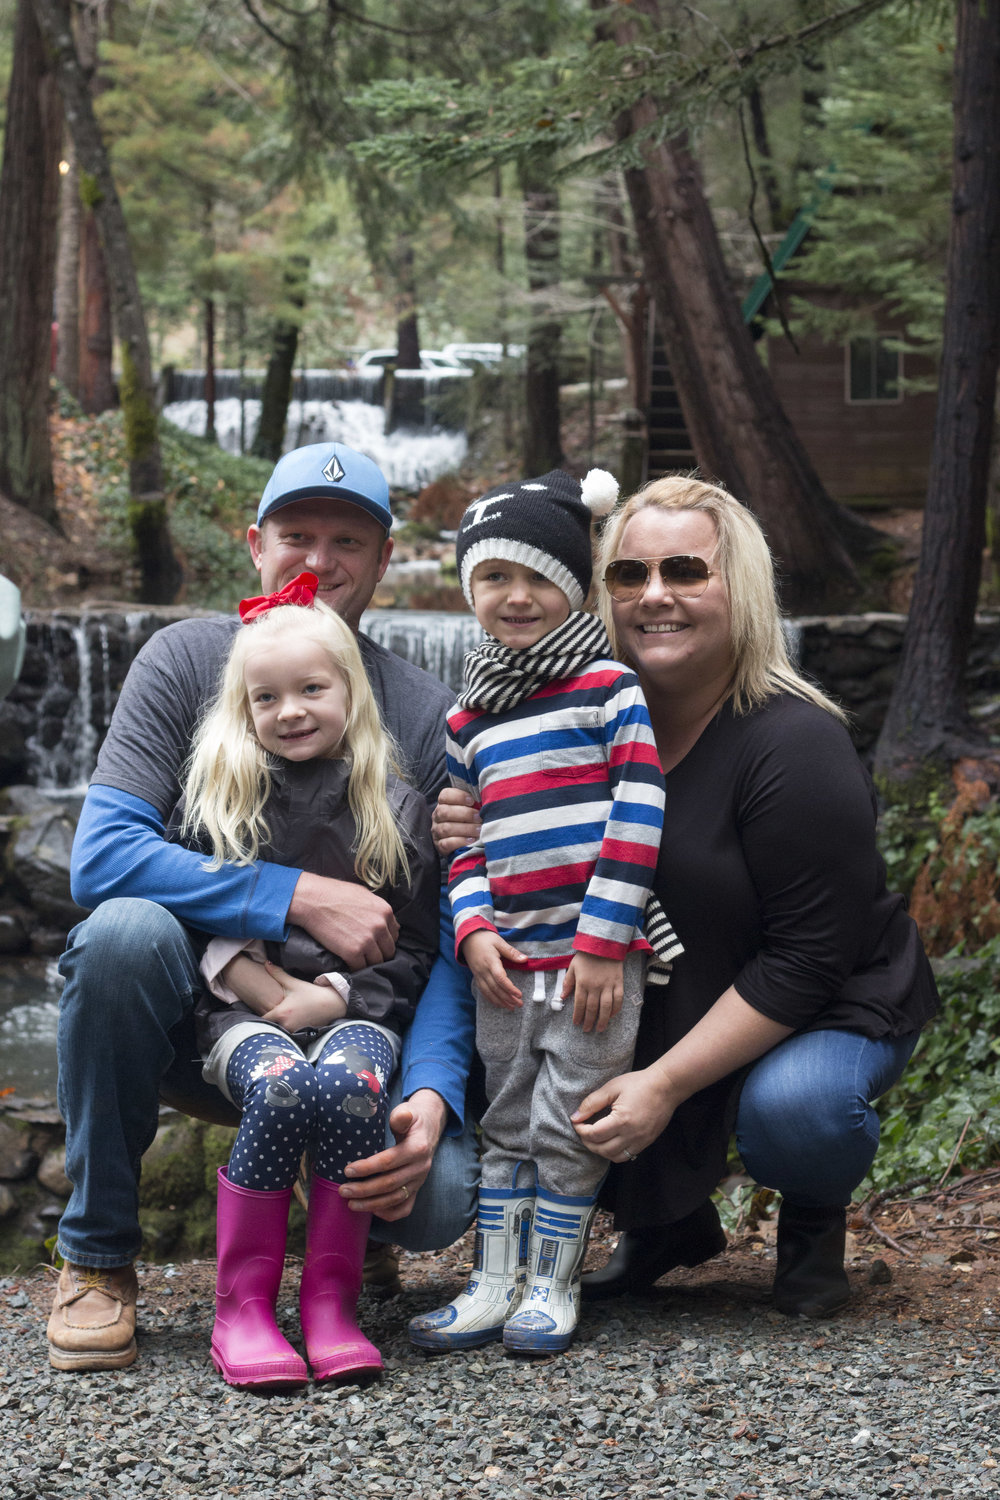 The Yates were lifelong residents of Hawthorne California and while they miss their family members down south, they are loving Placer County living.